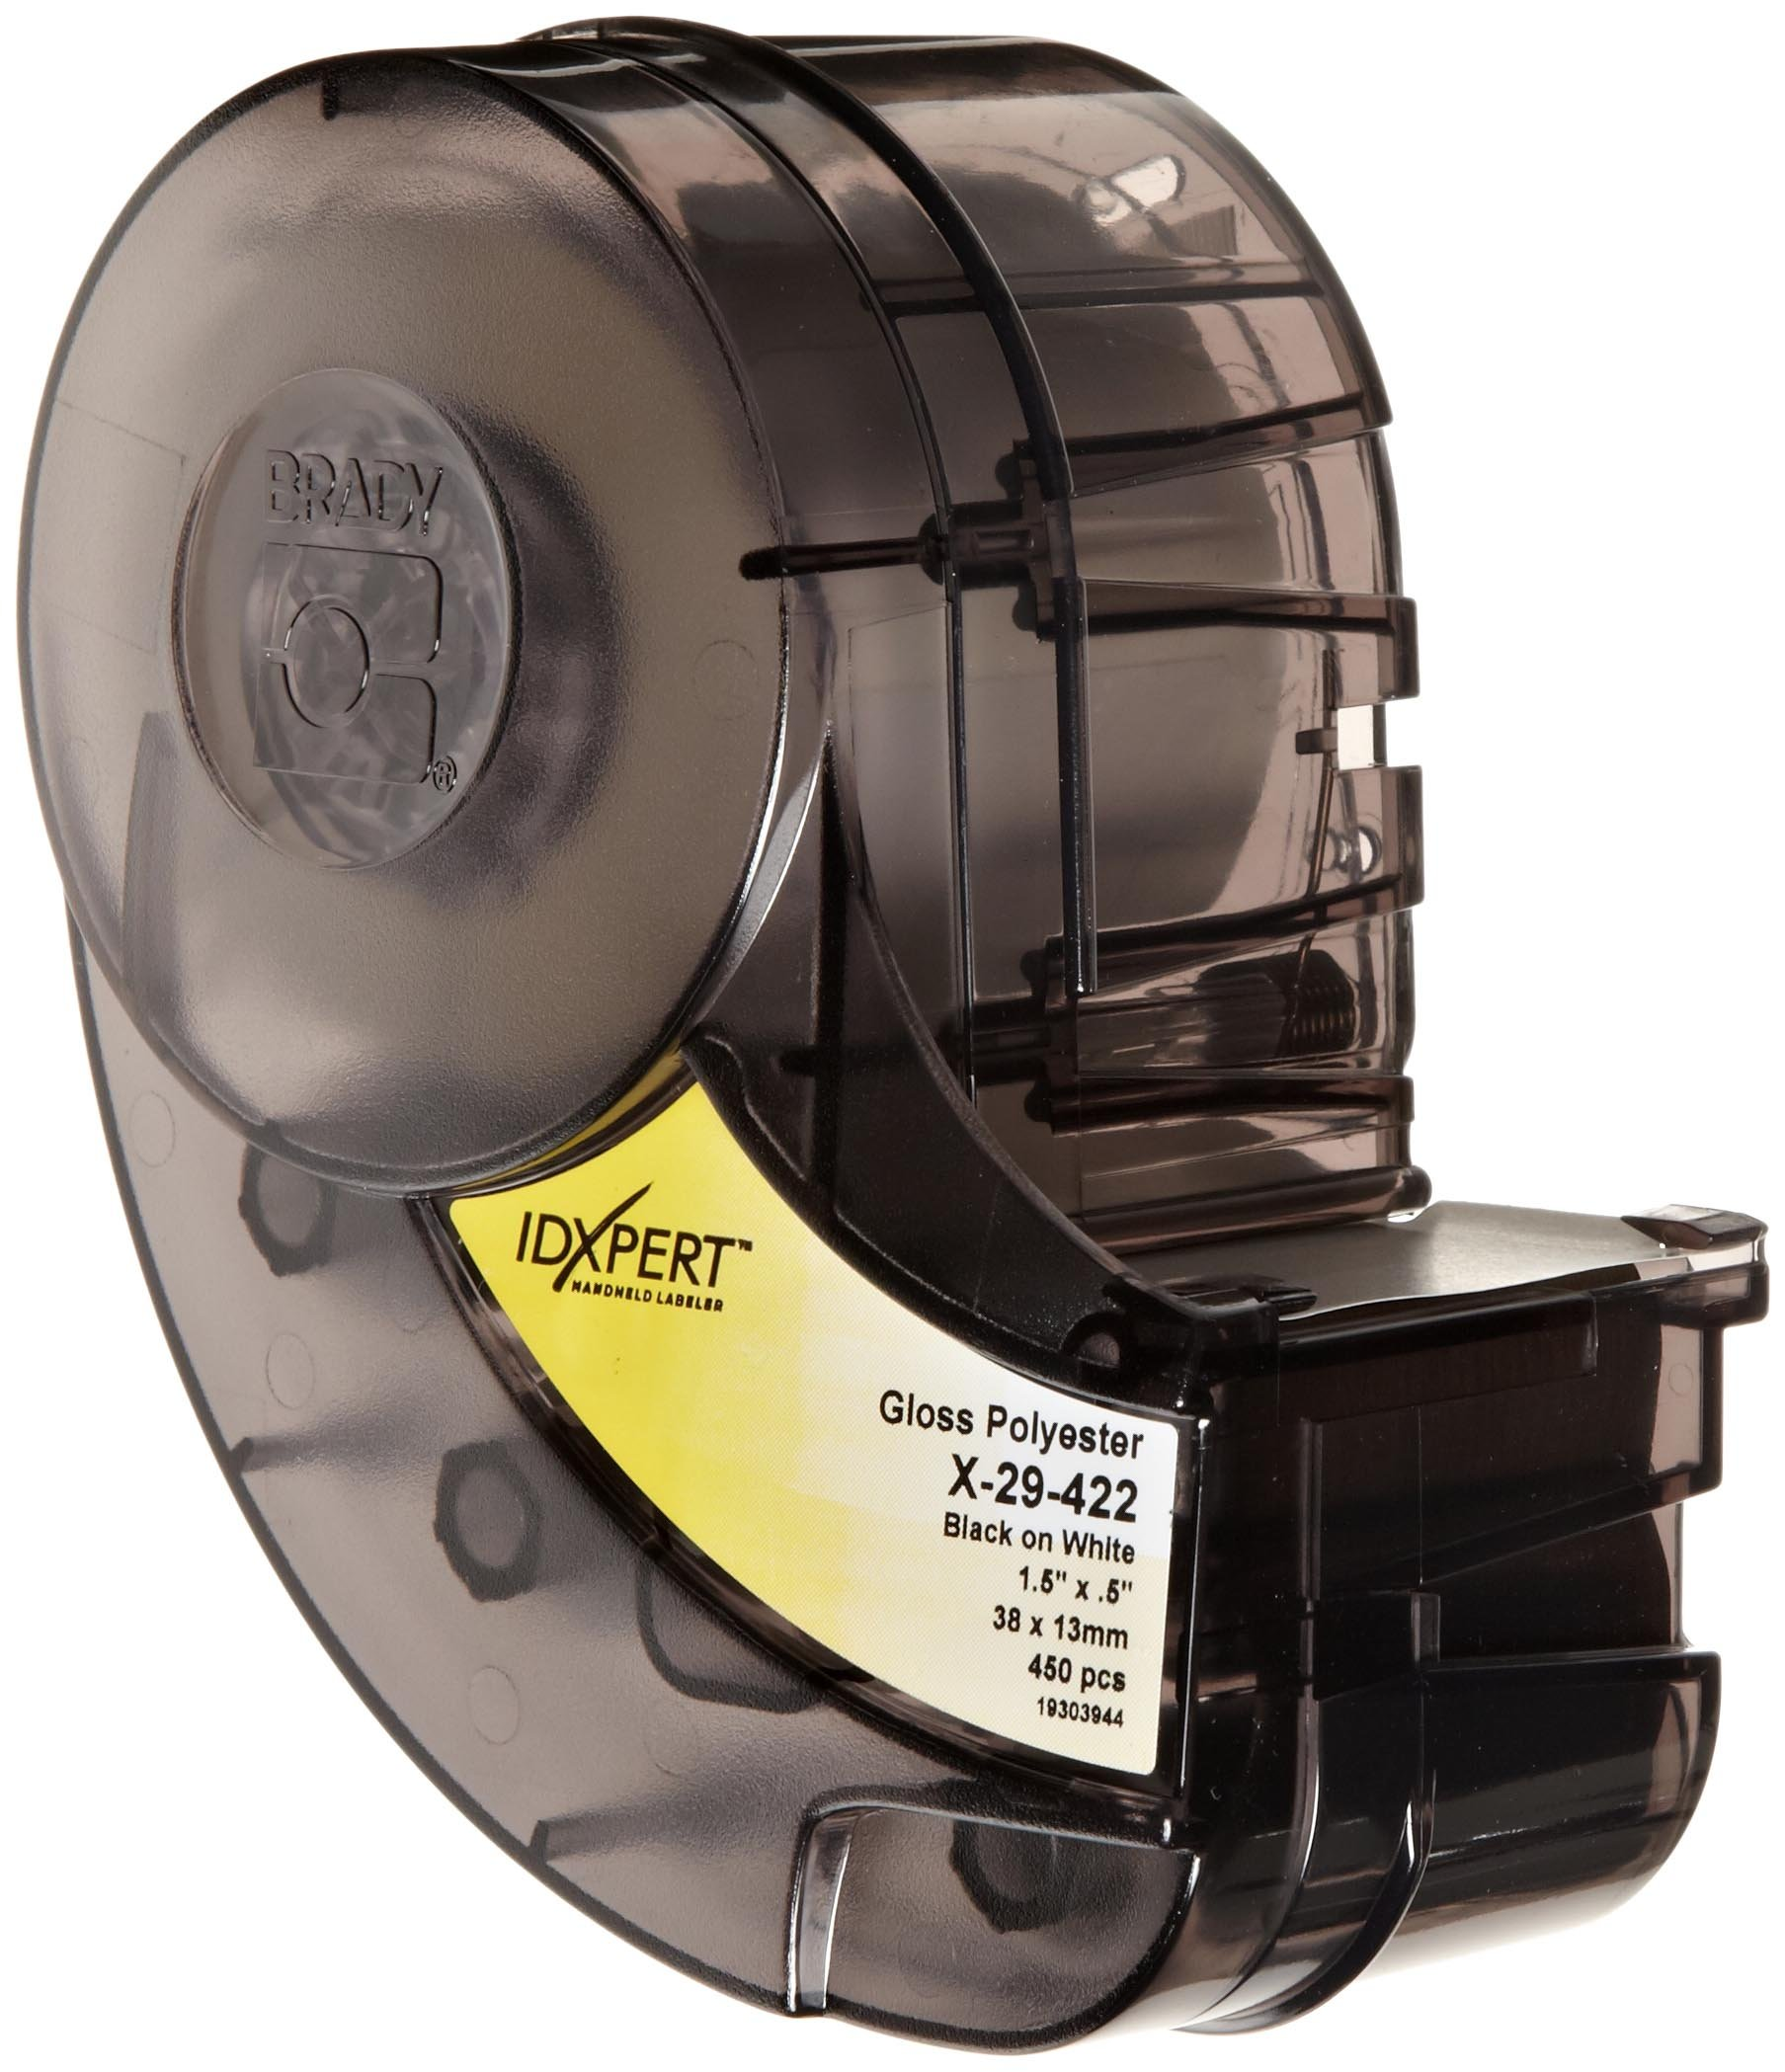 Brady X-29-422 IDXPERT 0.5'' Height, 1.5'' Width, B-422 Permanent Polyester, Black On White Color Label (450 Per Cartridge) by Brady